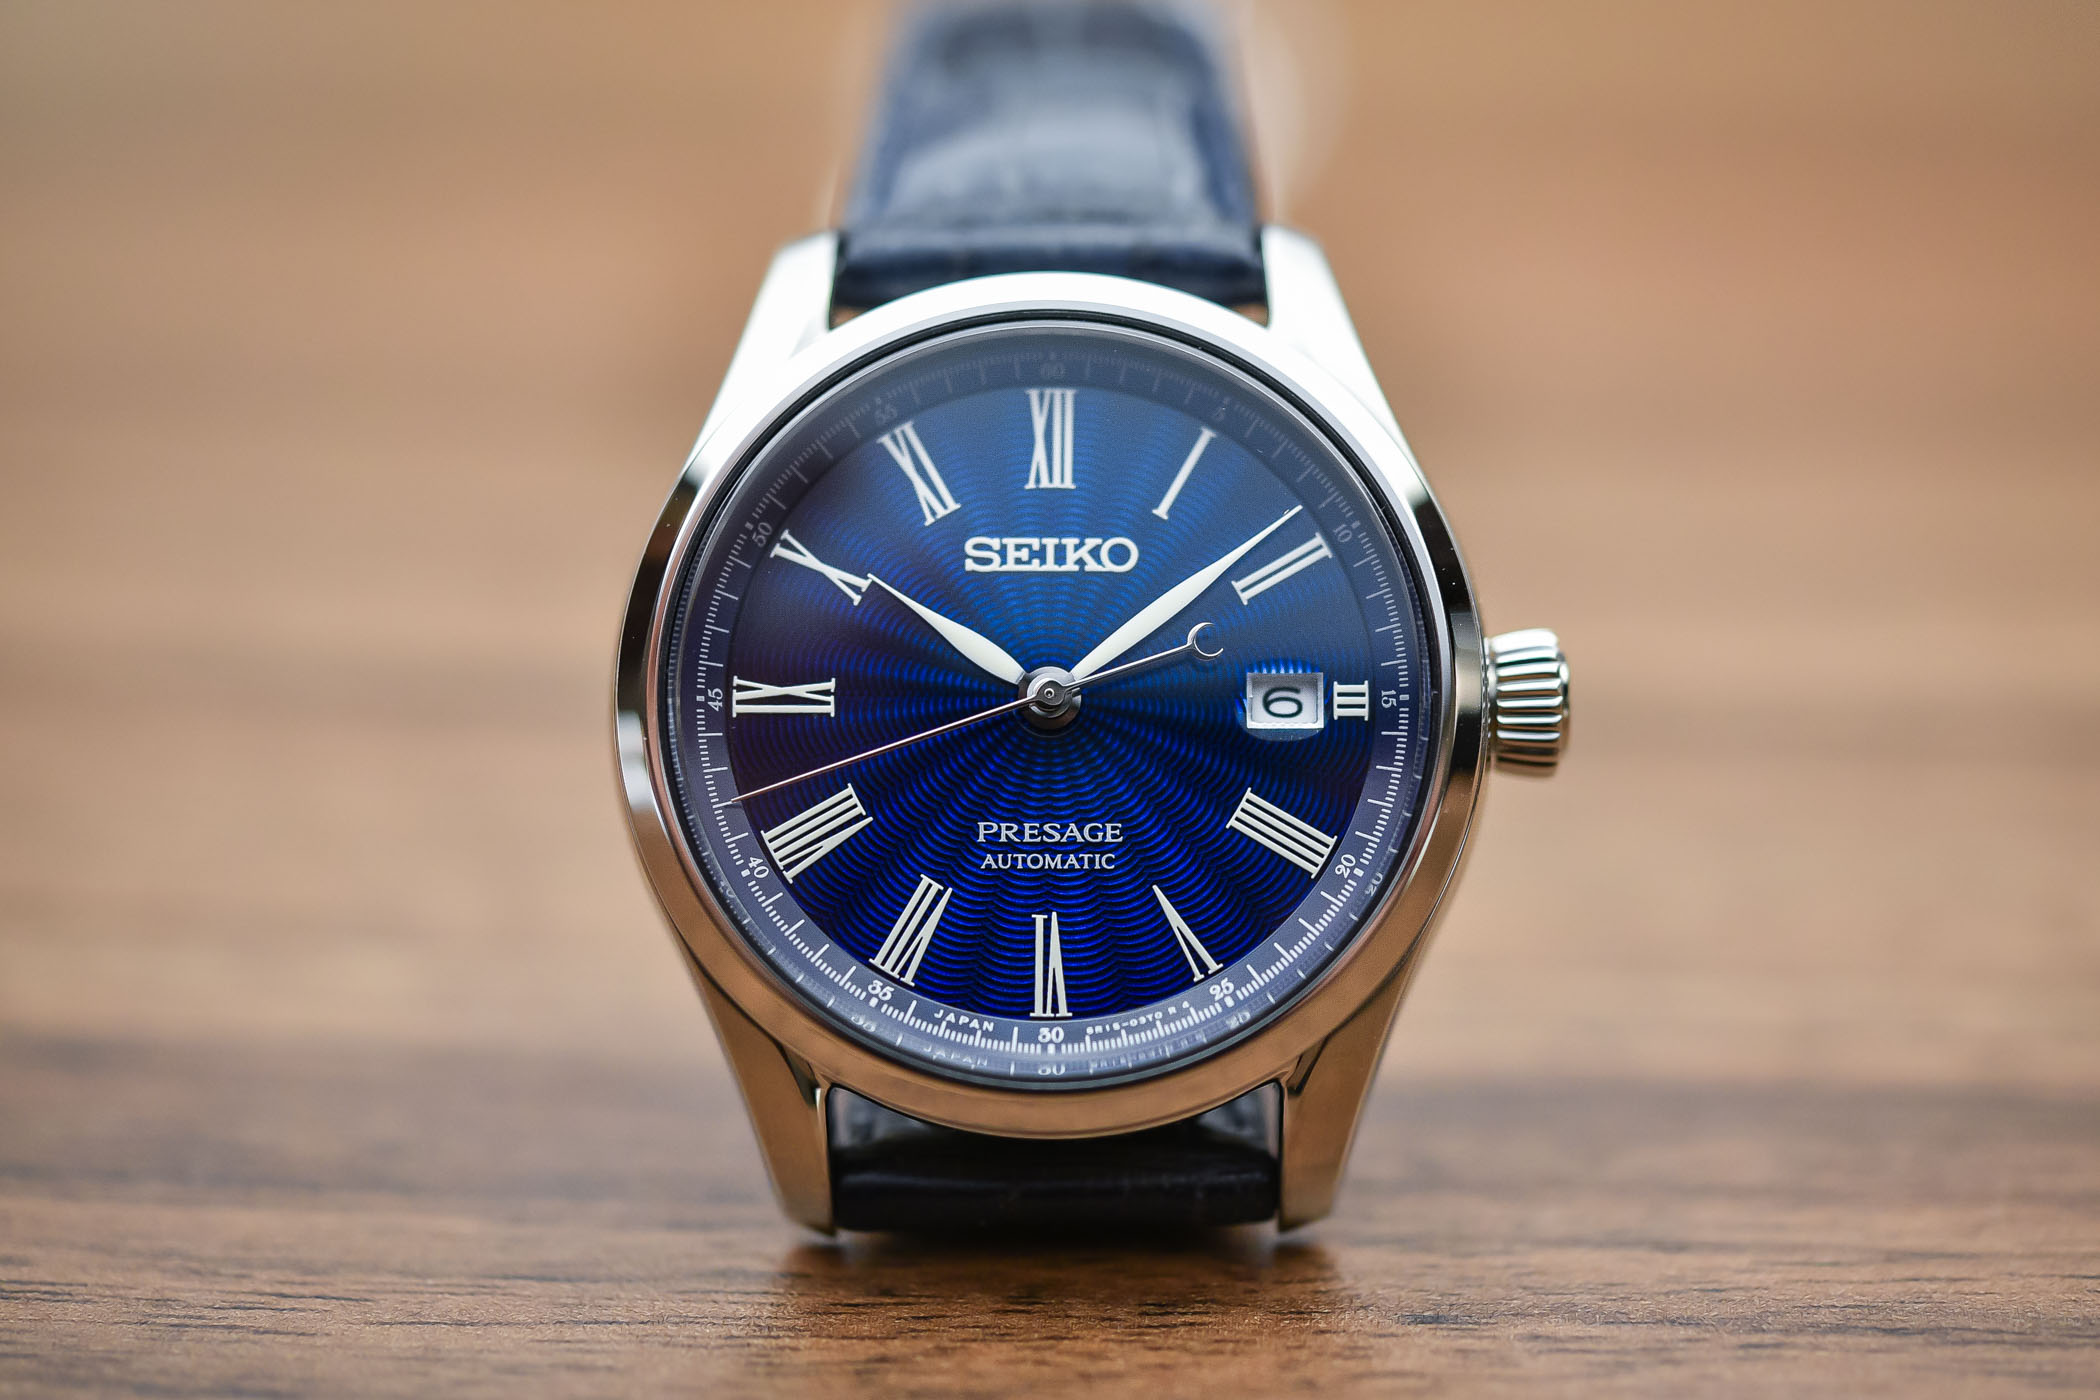 Seiko PresageShippo Enamel Limited EditionSPB075 - Affordable Watches Baselworld 2018